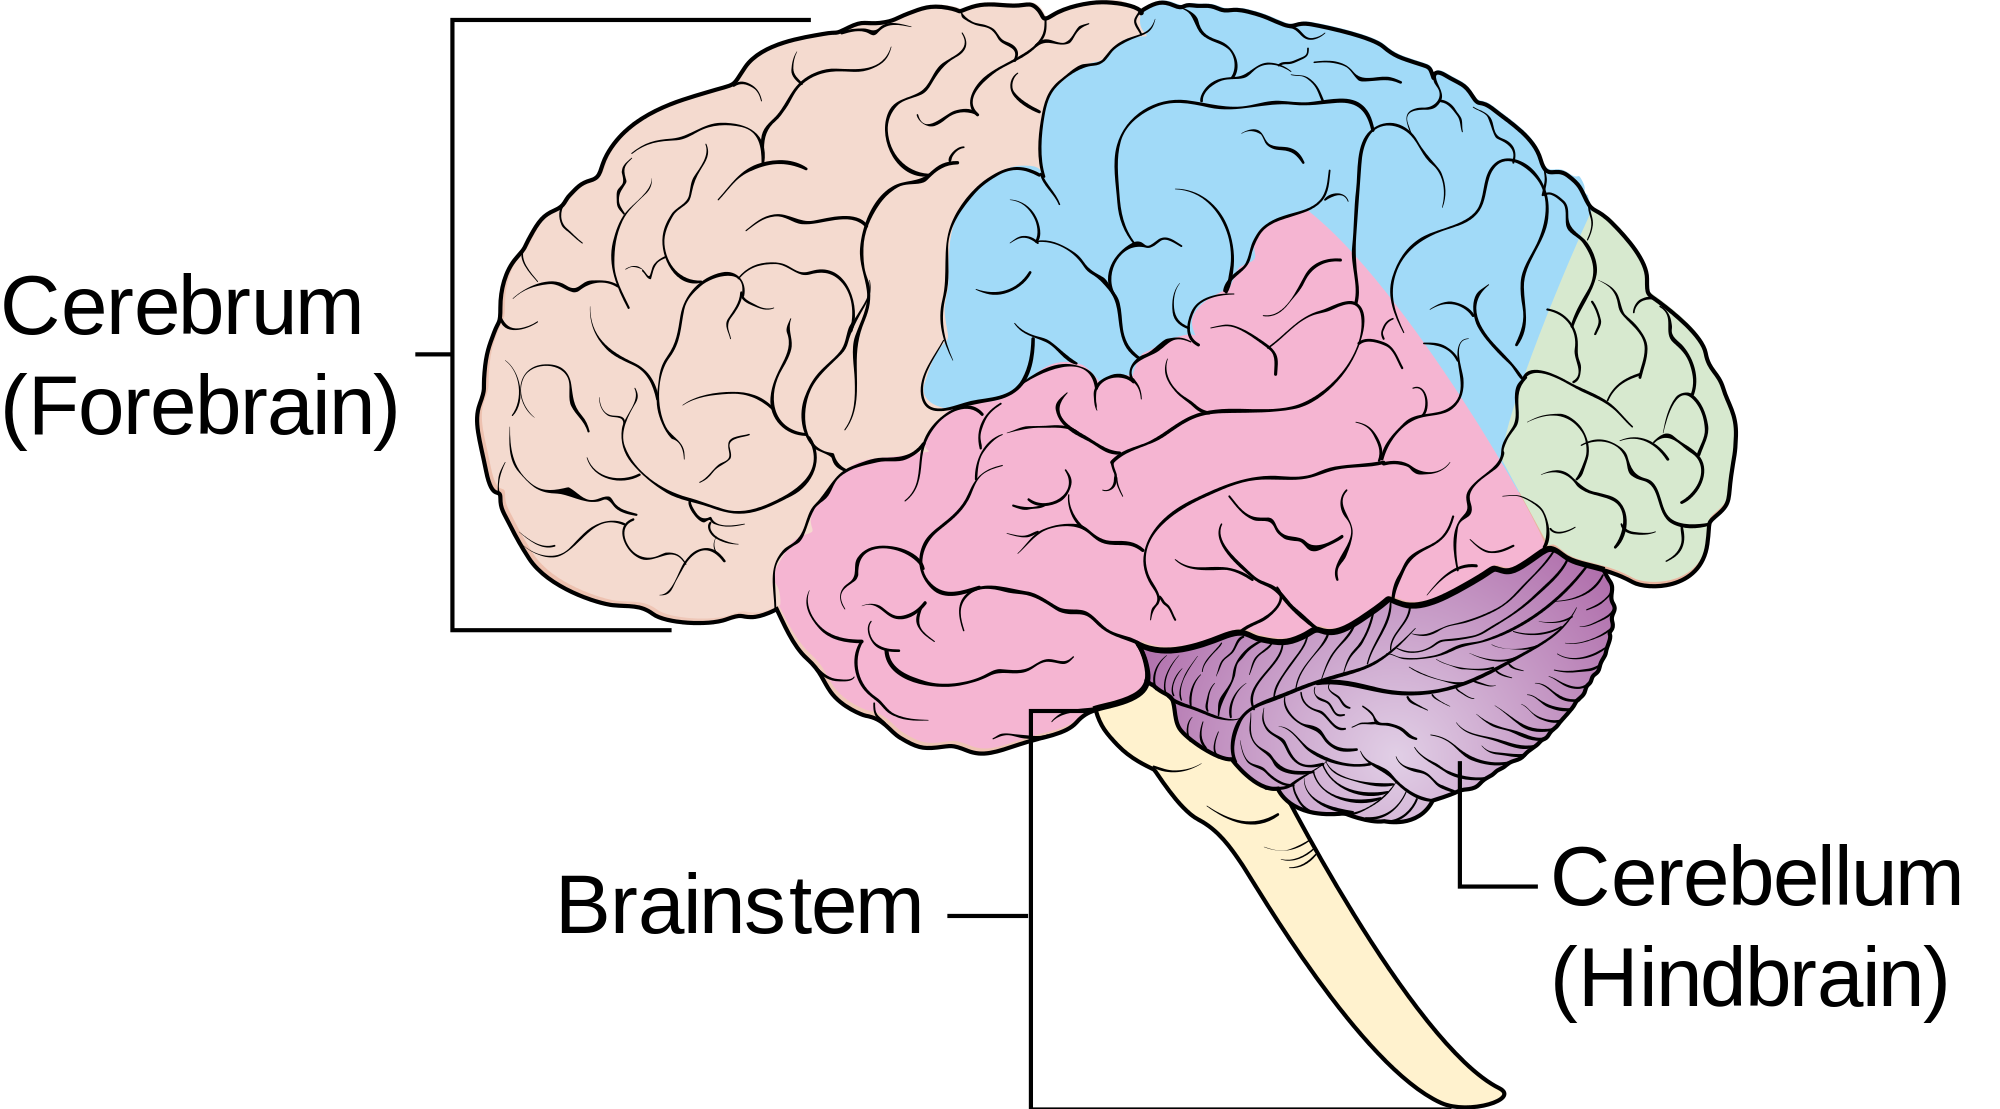 Parts Of Your Brain Lovely Brain Diagram Unlabeled Color